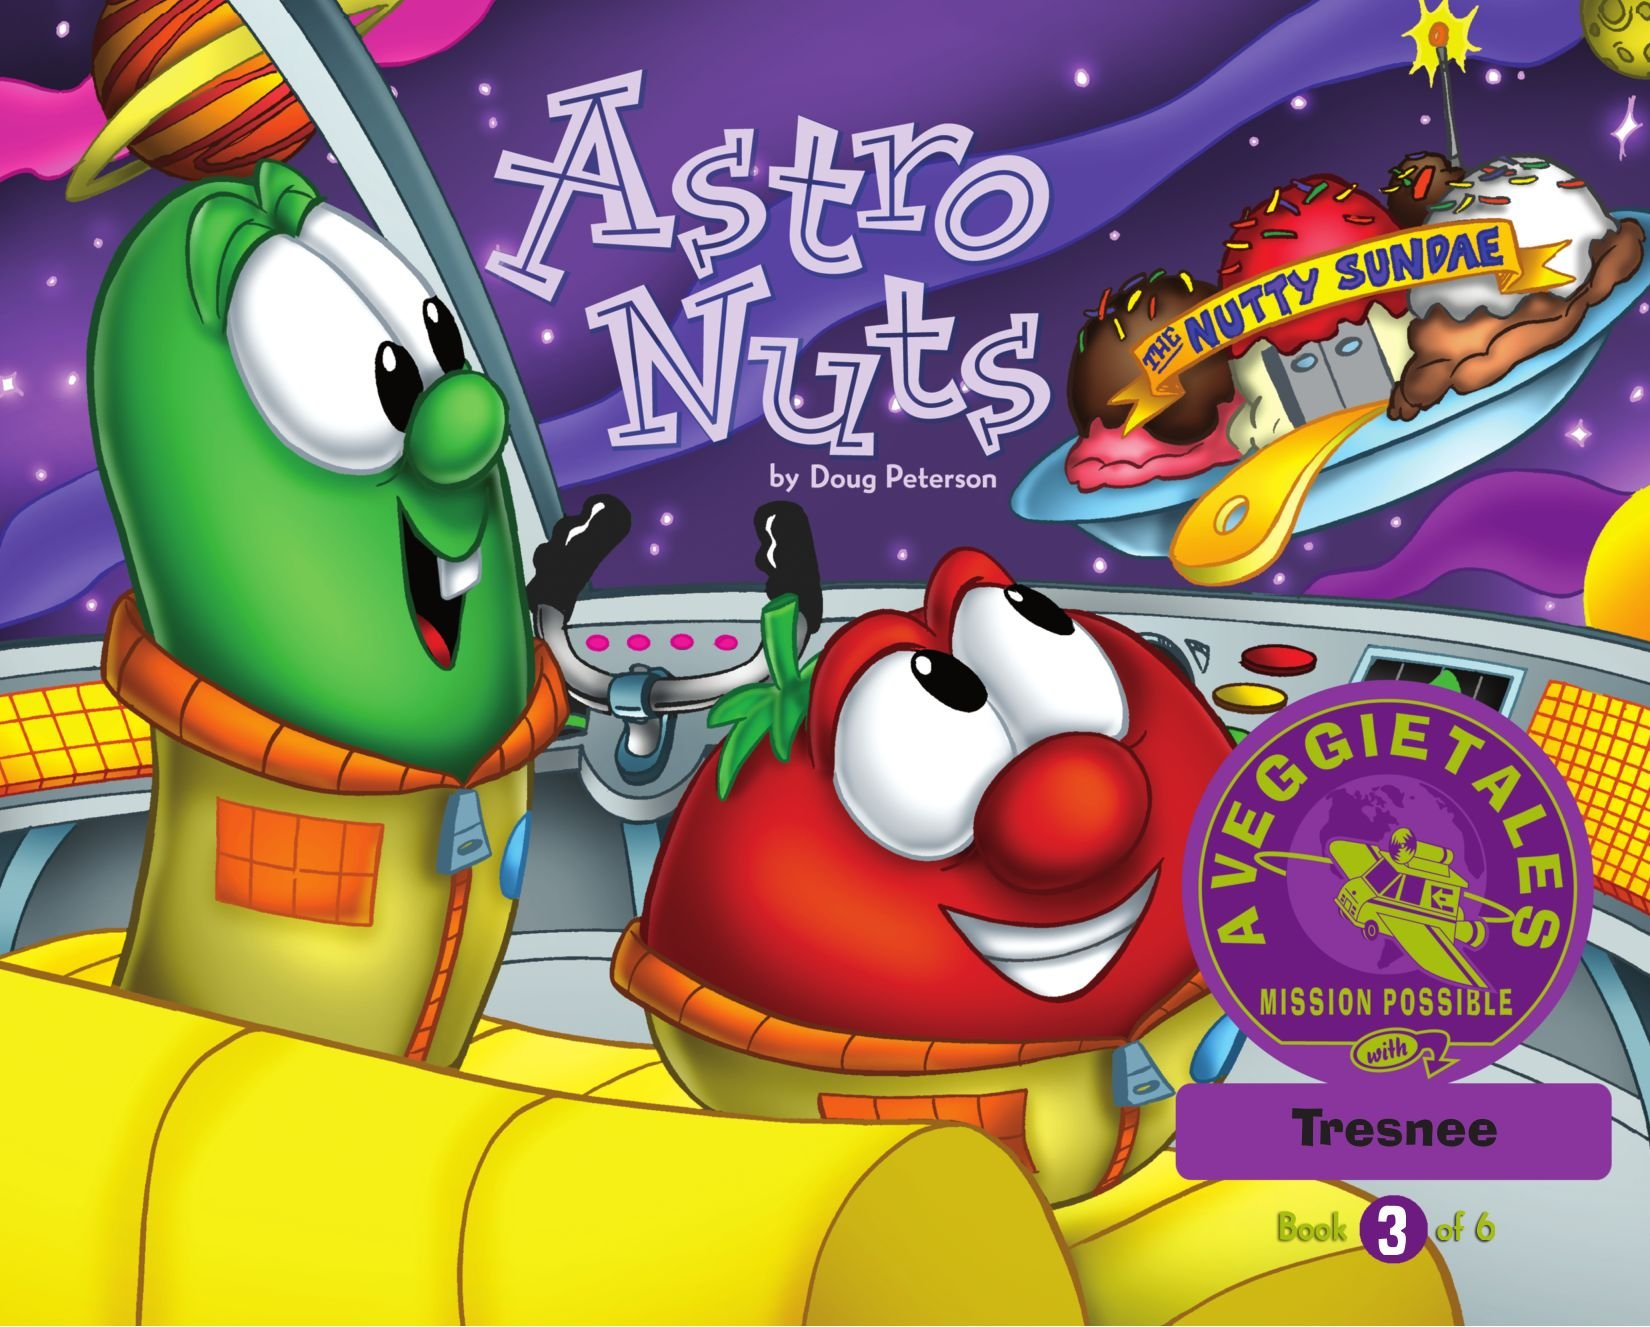 Astro Nuts - VeggieTales Mission Possible Adventure Series #3: Personalized for Tresnee (Boy) PDF